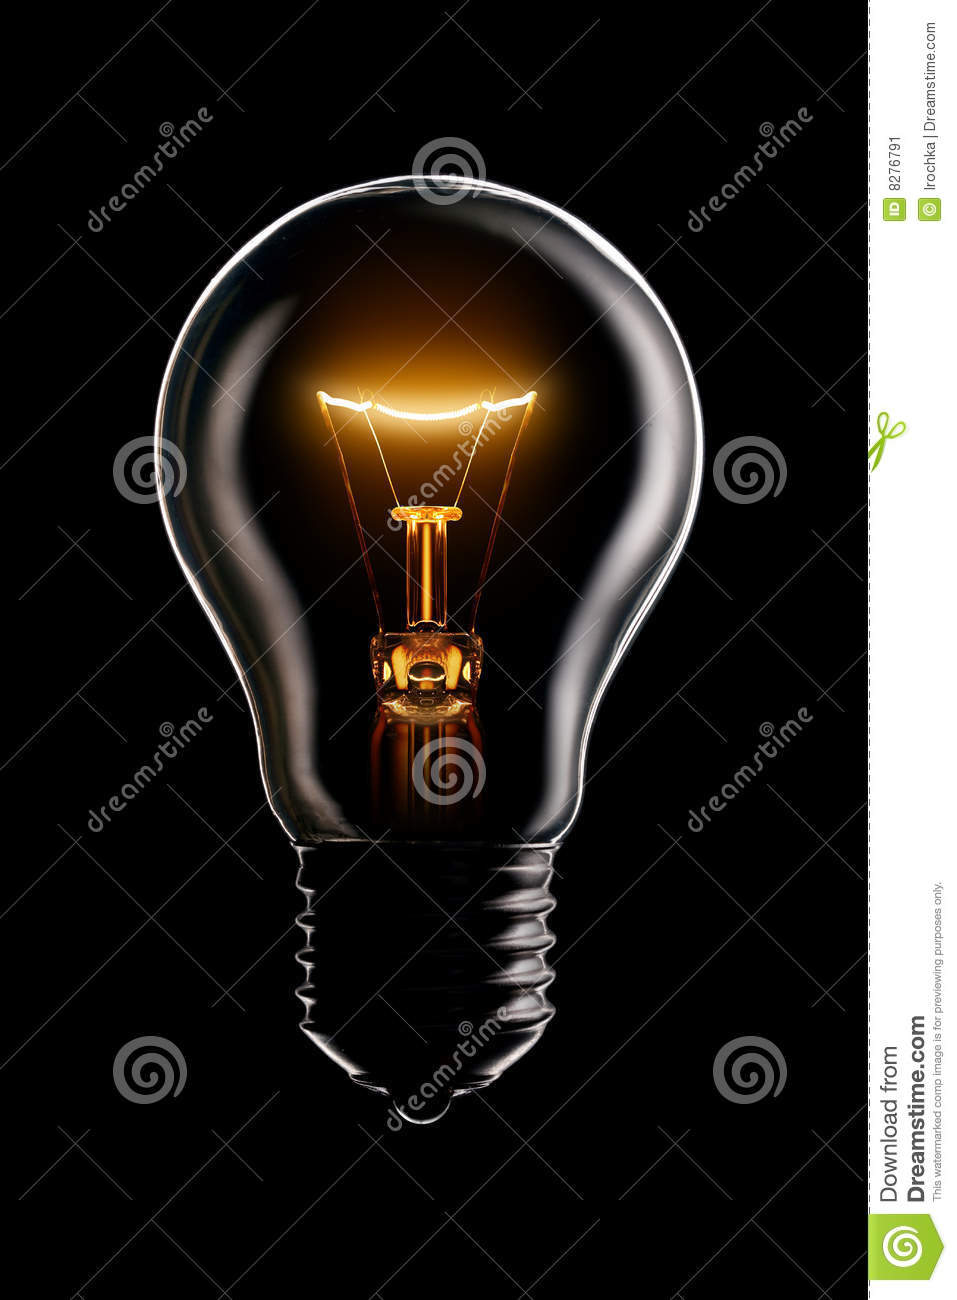 2 likewise Bright Sun Clipart additionally Thomas Edison 9jkYFa9cOvkw8 likewise Black Crush Scentsy Warmer furthermore Stock Illustration Matted Opaque Tungsten Light Bulb Side View Sketch Vector Illustration Style Isolated White Background Realistic Hand Drawing Image85276840. on glowing light bulb